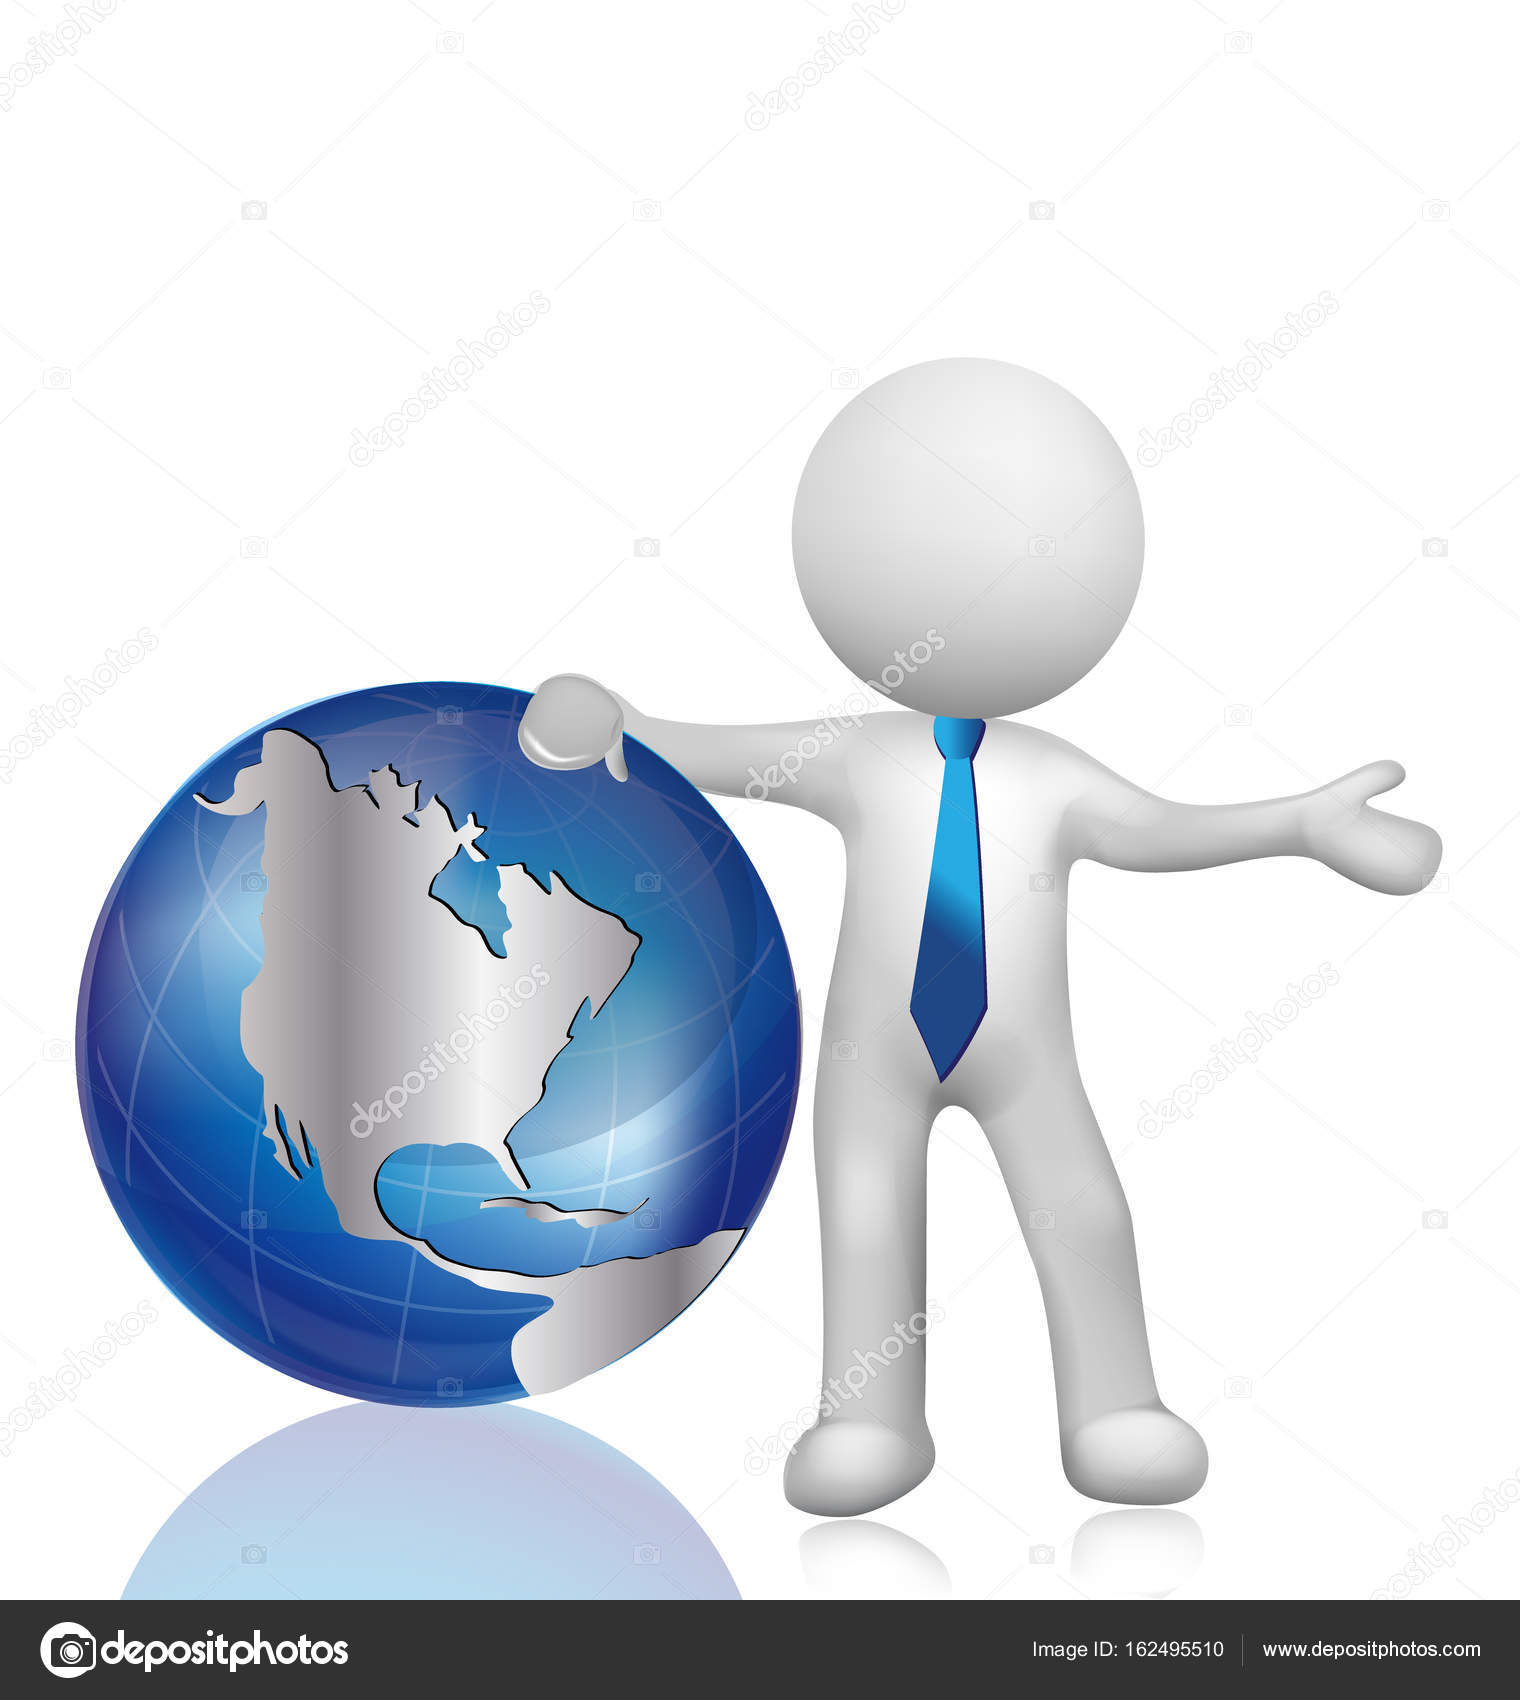 3d white people world map globe stock vector glopphy 162495510 3d white people man with world map globe vector logo vector by glopphy gumiabroncs Choice Image